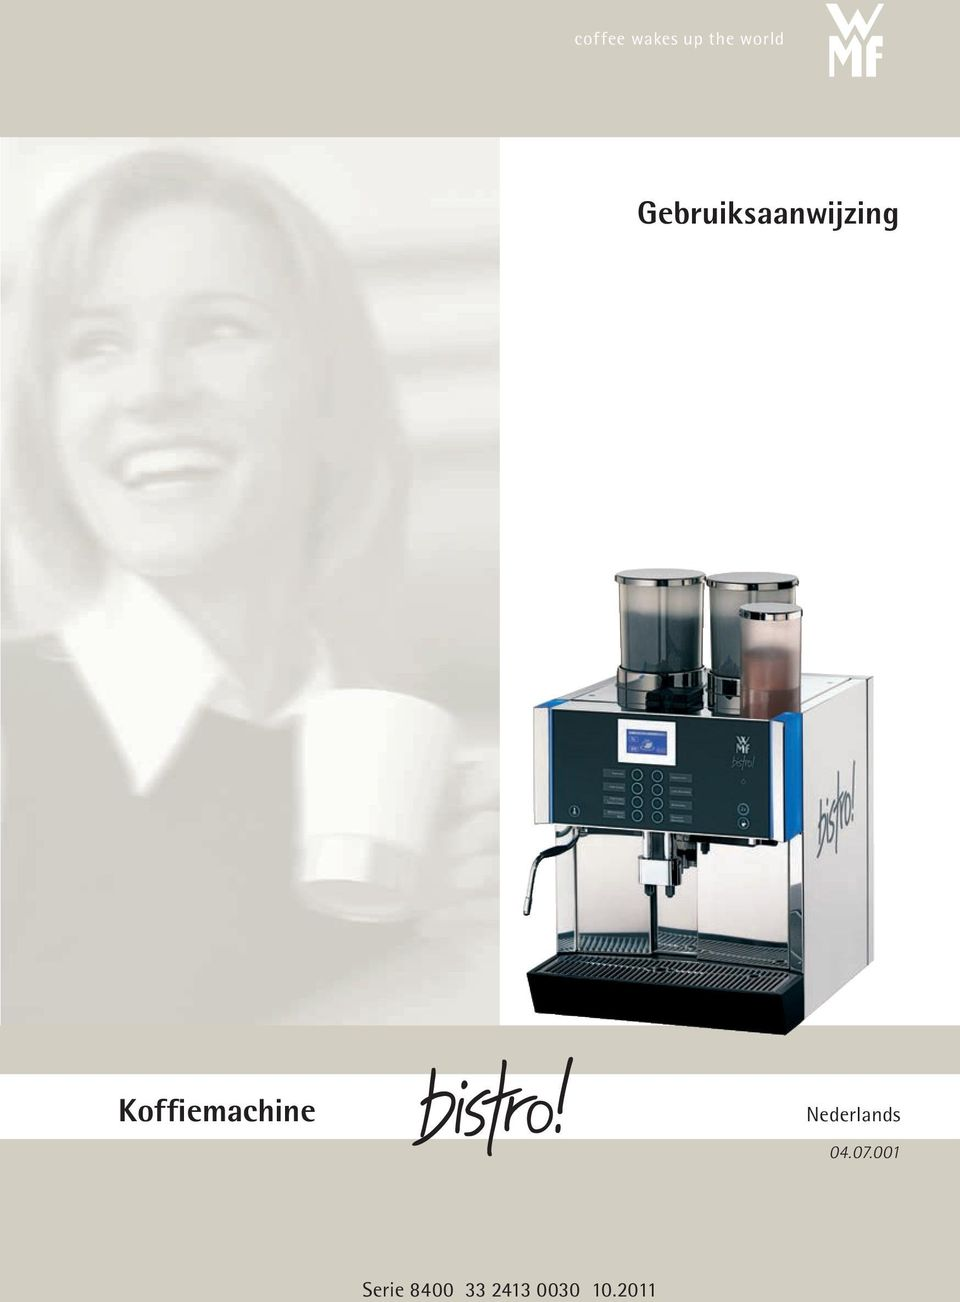 Koffiemachine Nederlands 04.